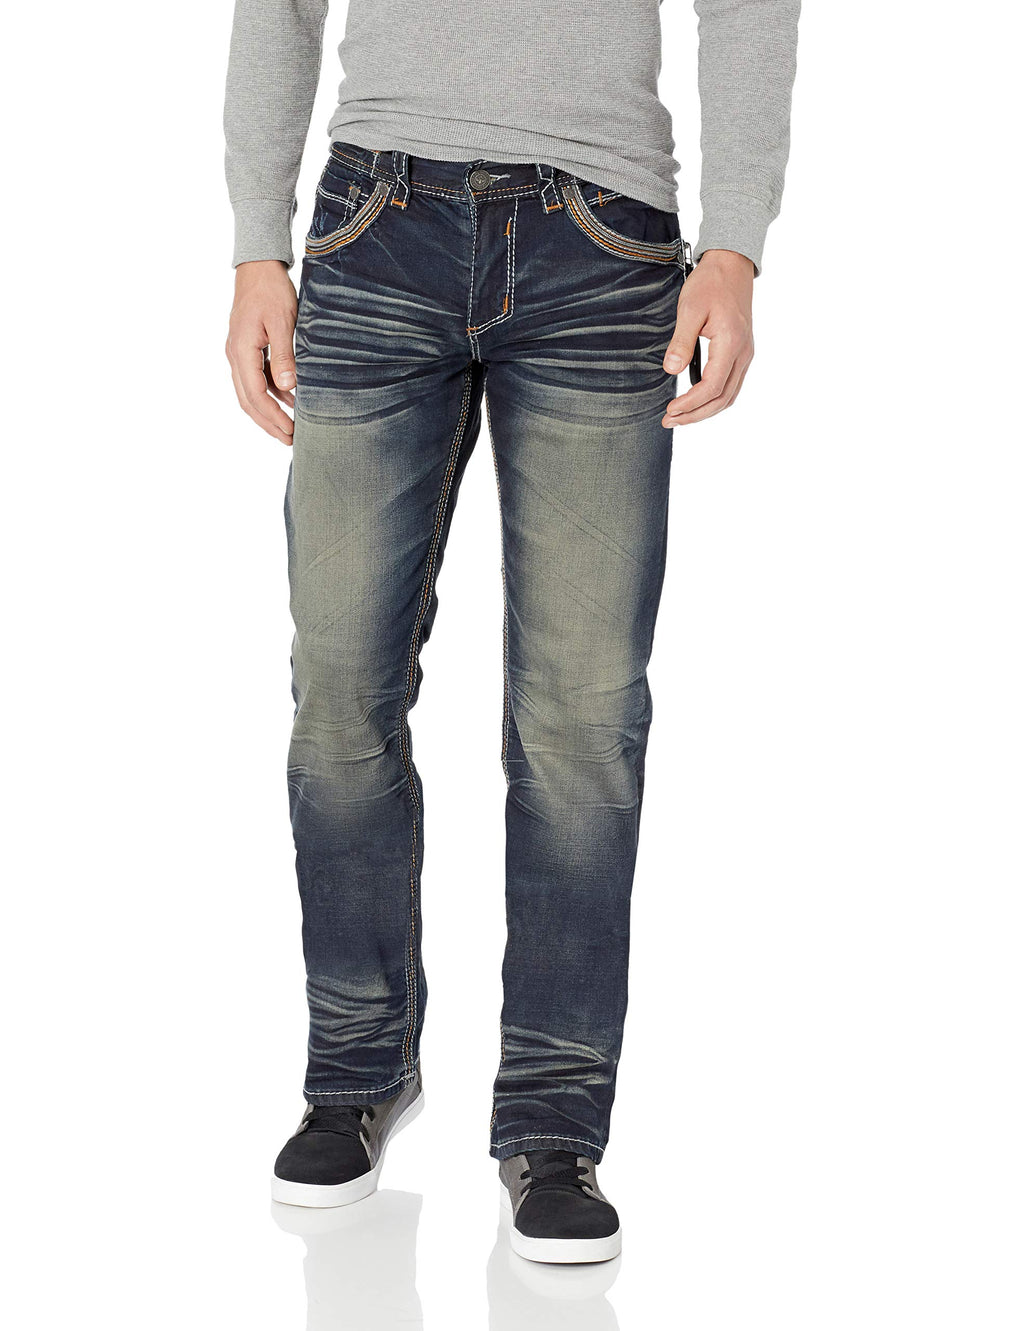 Affliction Men's Blake Fleur Spago, wash, 42